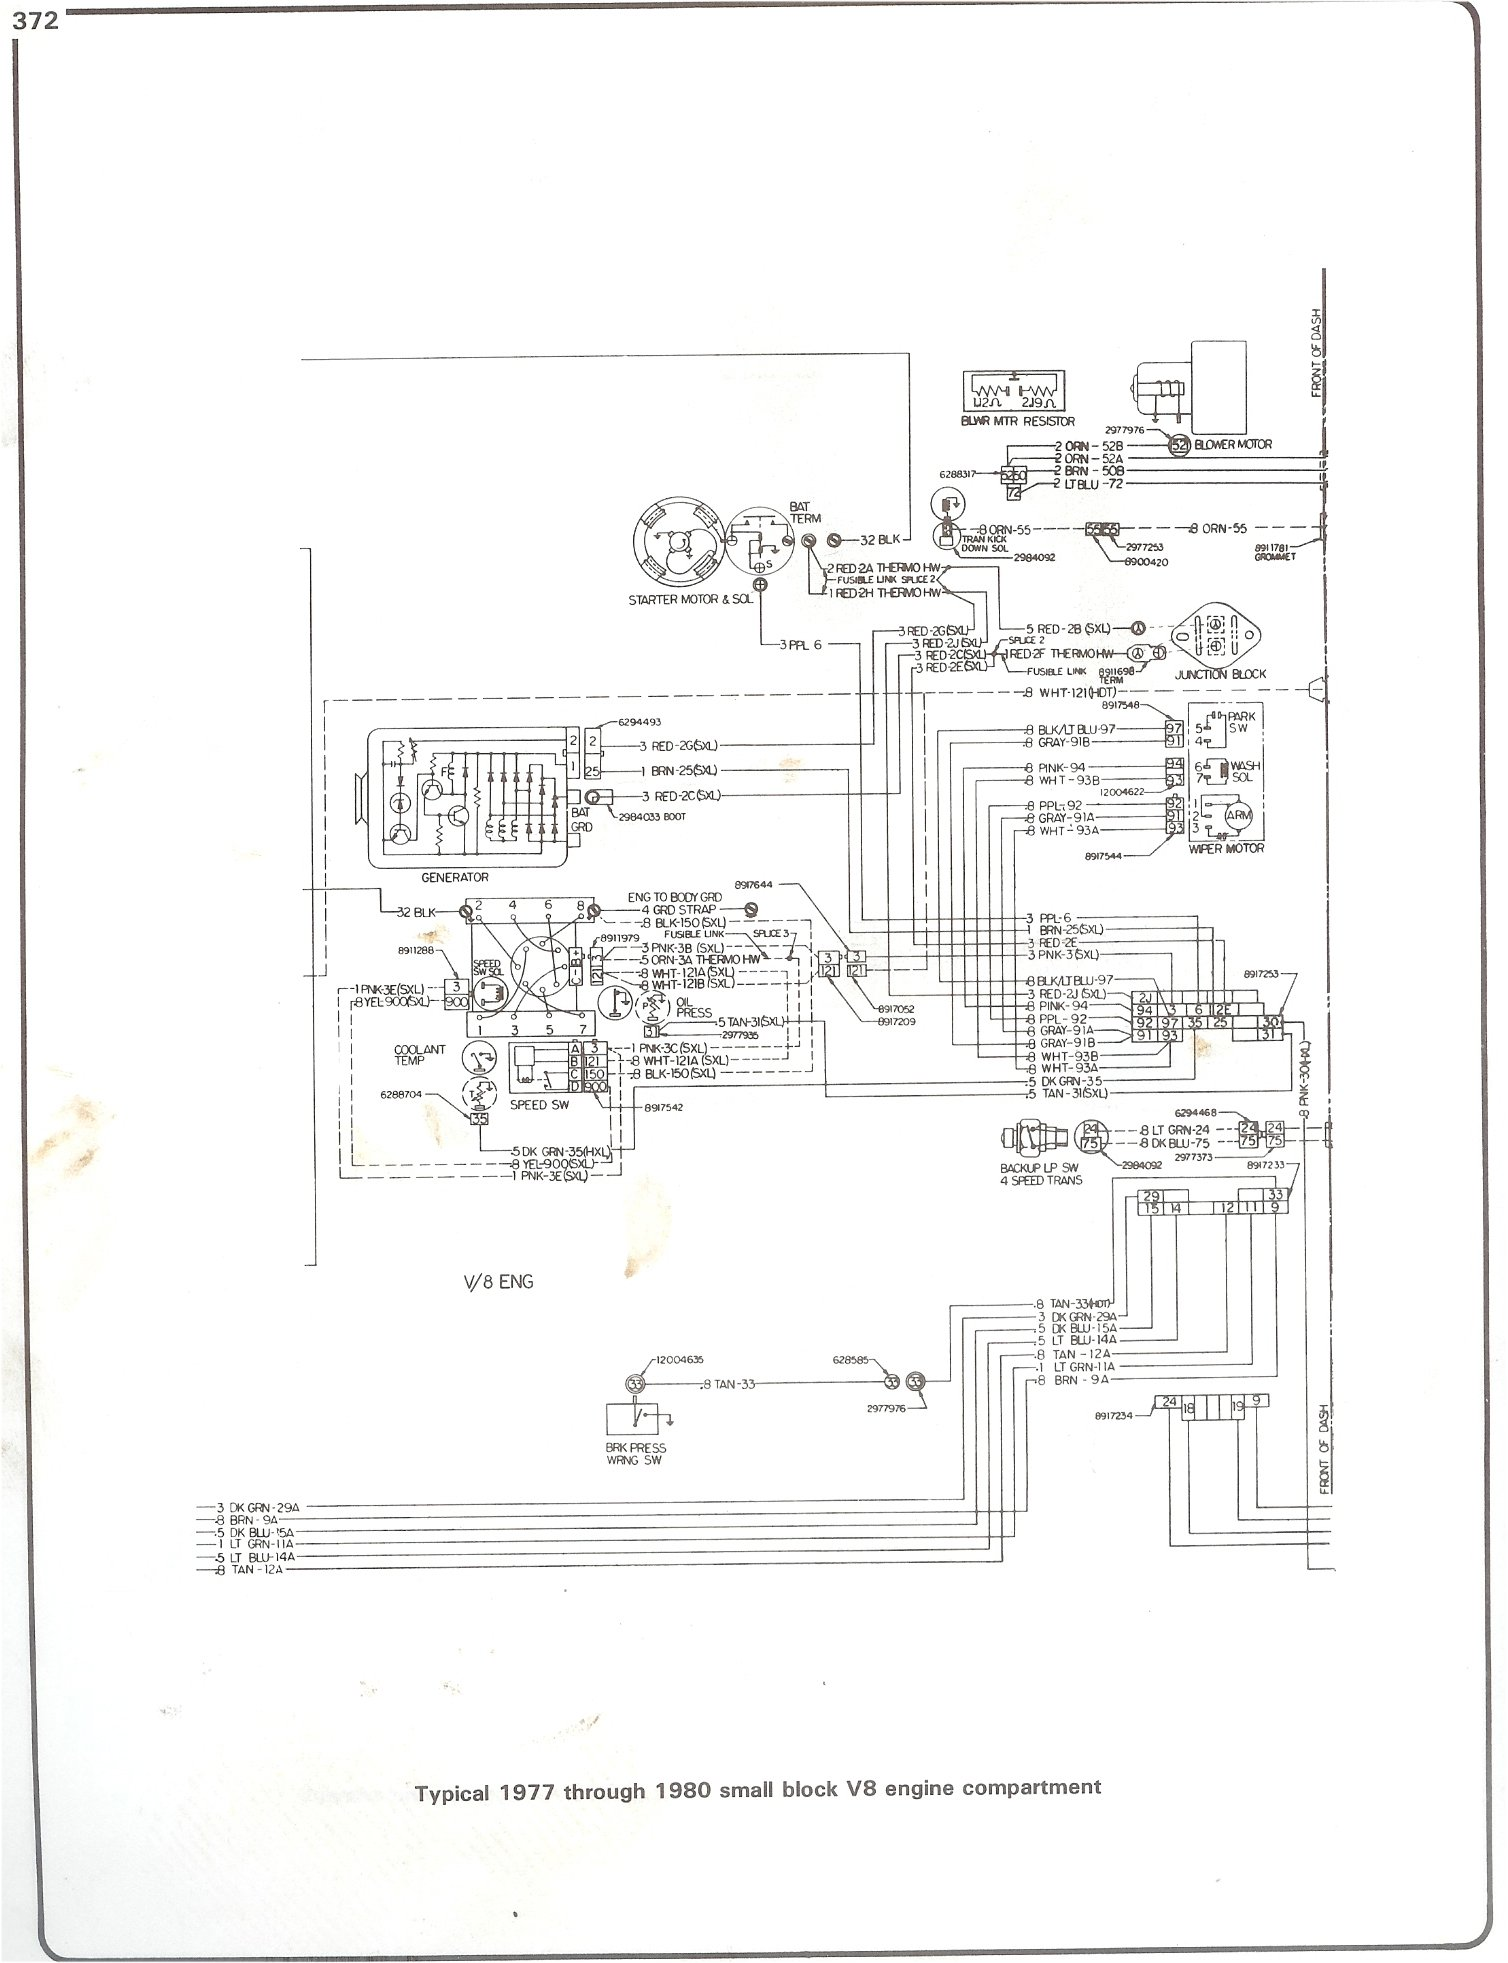 Complete 73 87 Wiring Diagrams 1985 Gmc Jimmy Diagram 77 80 Sbc Engine